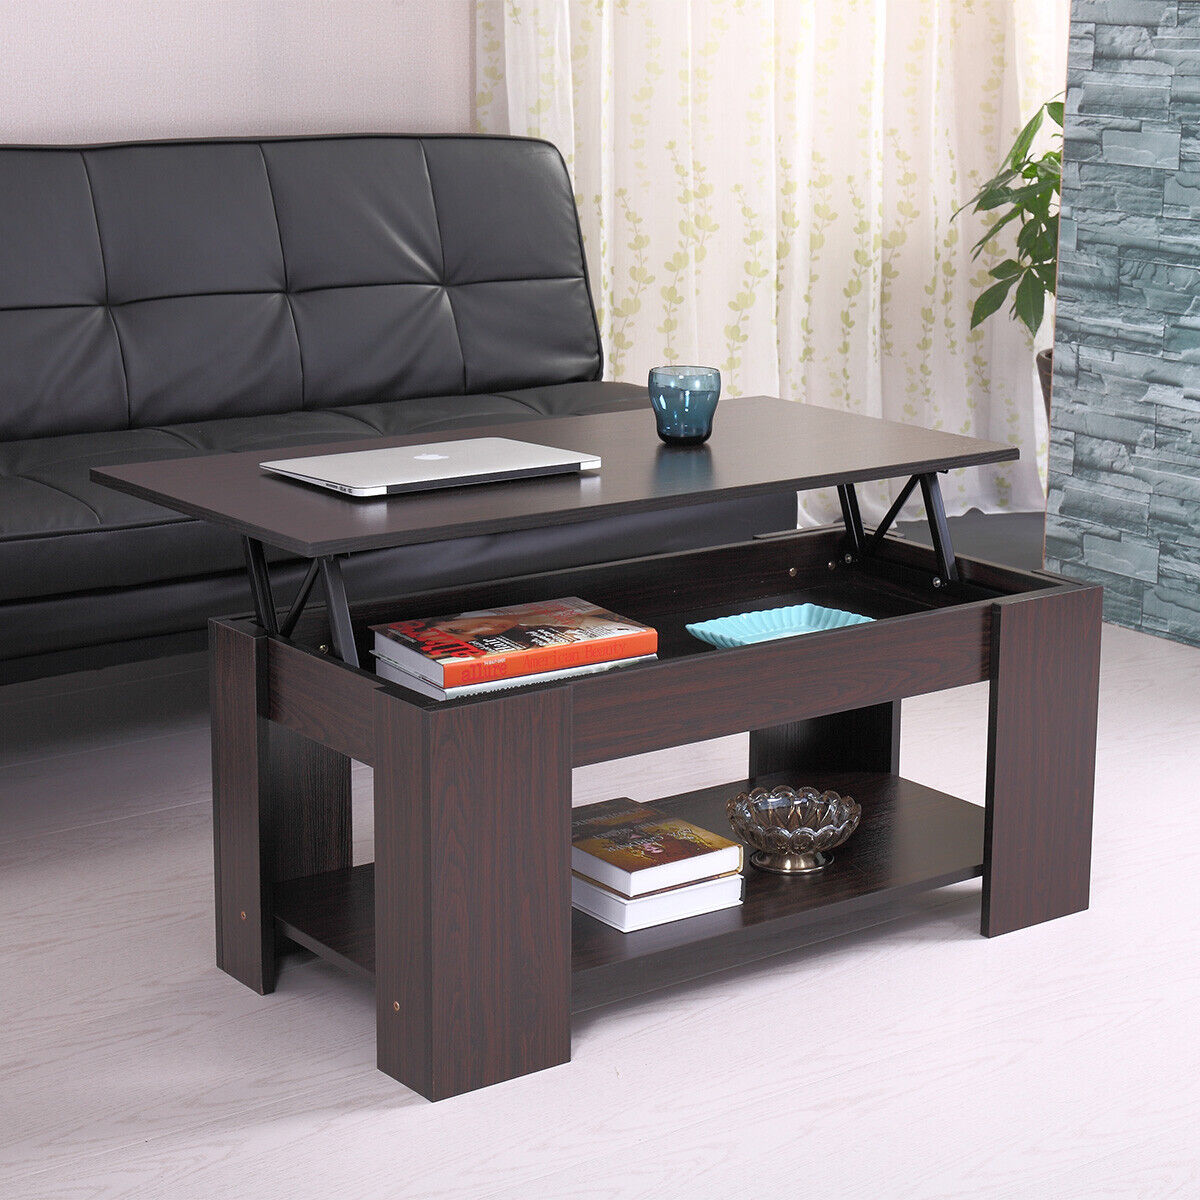 Modern Wood Lift Top Coffee Table W Storage E Living Room Furniture Walnut